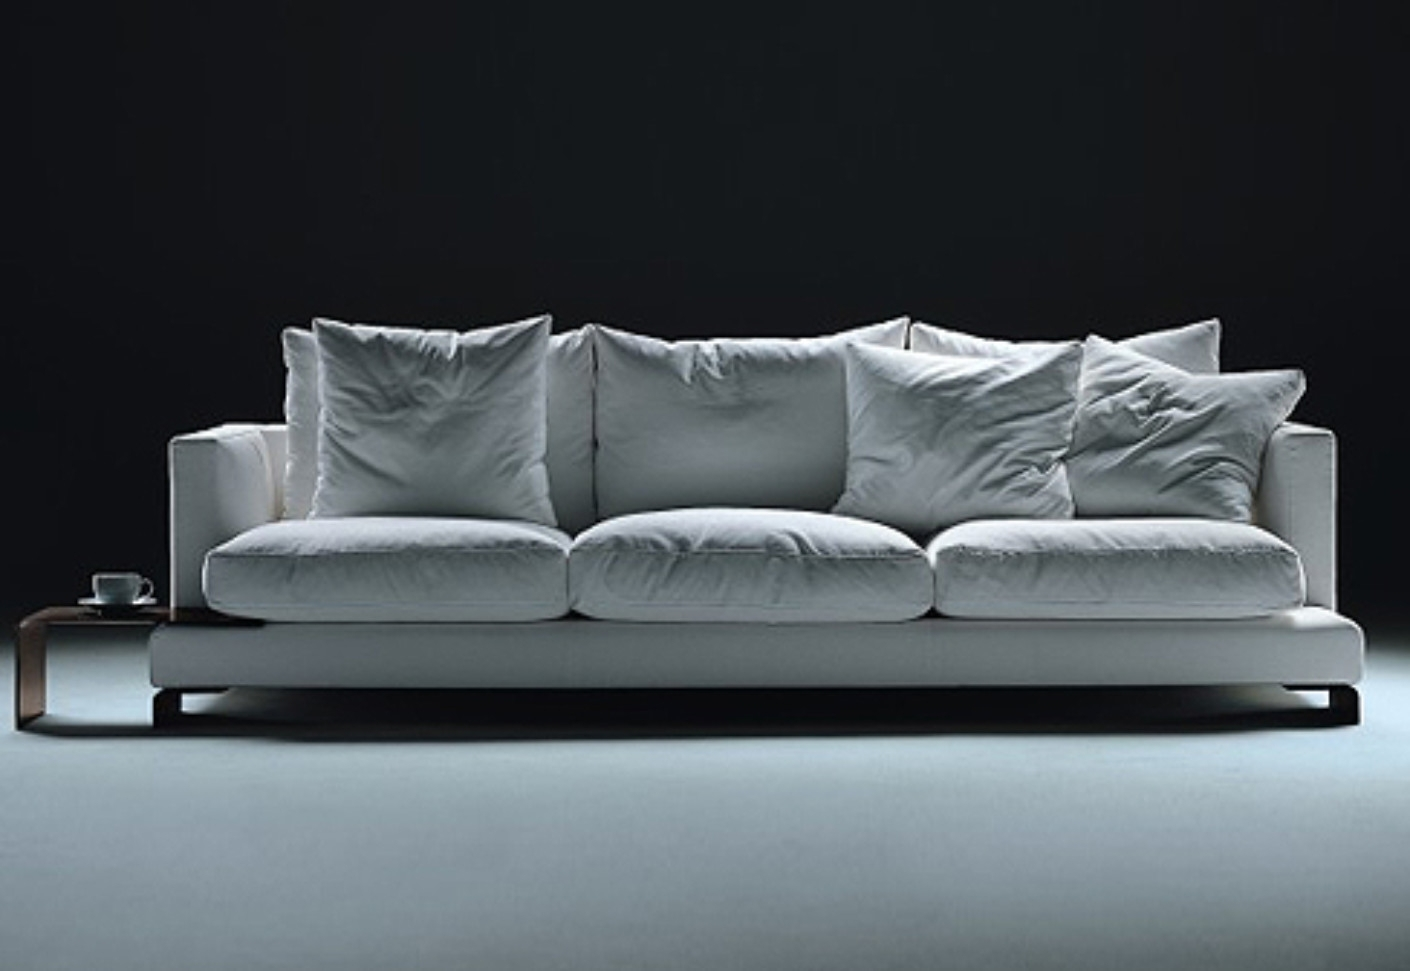 Long Island Sofaflexform | Stylepark In Down Filled Sofas (View 2 of 10)